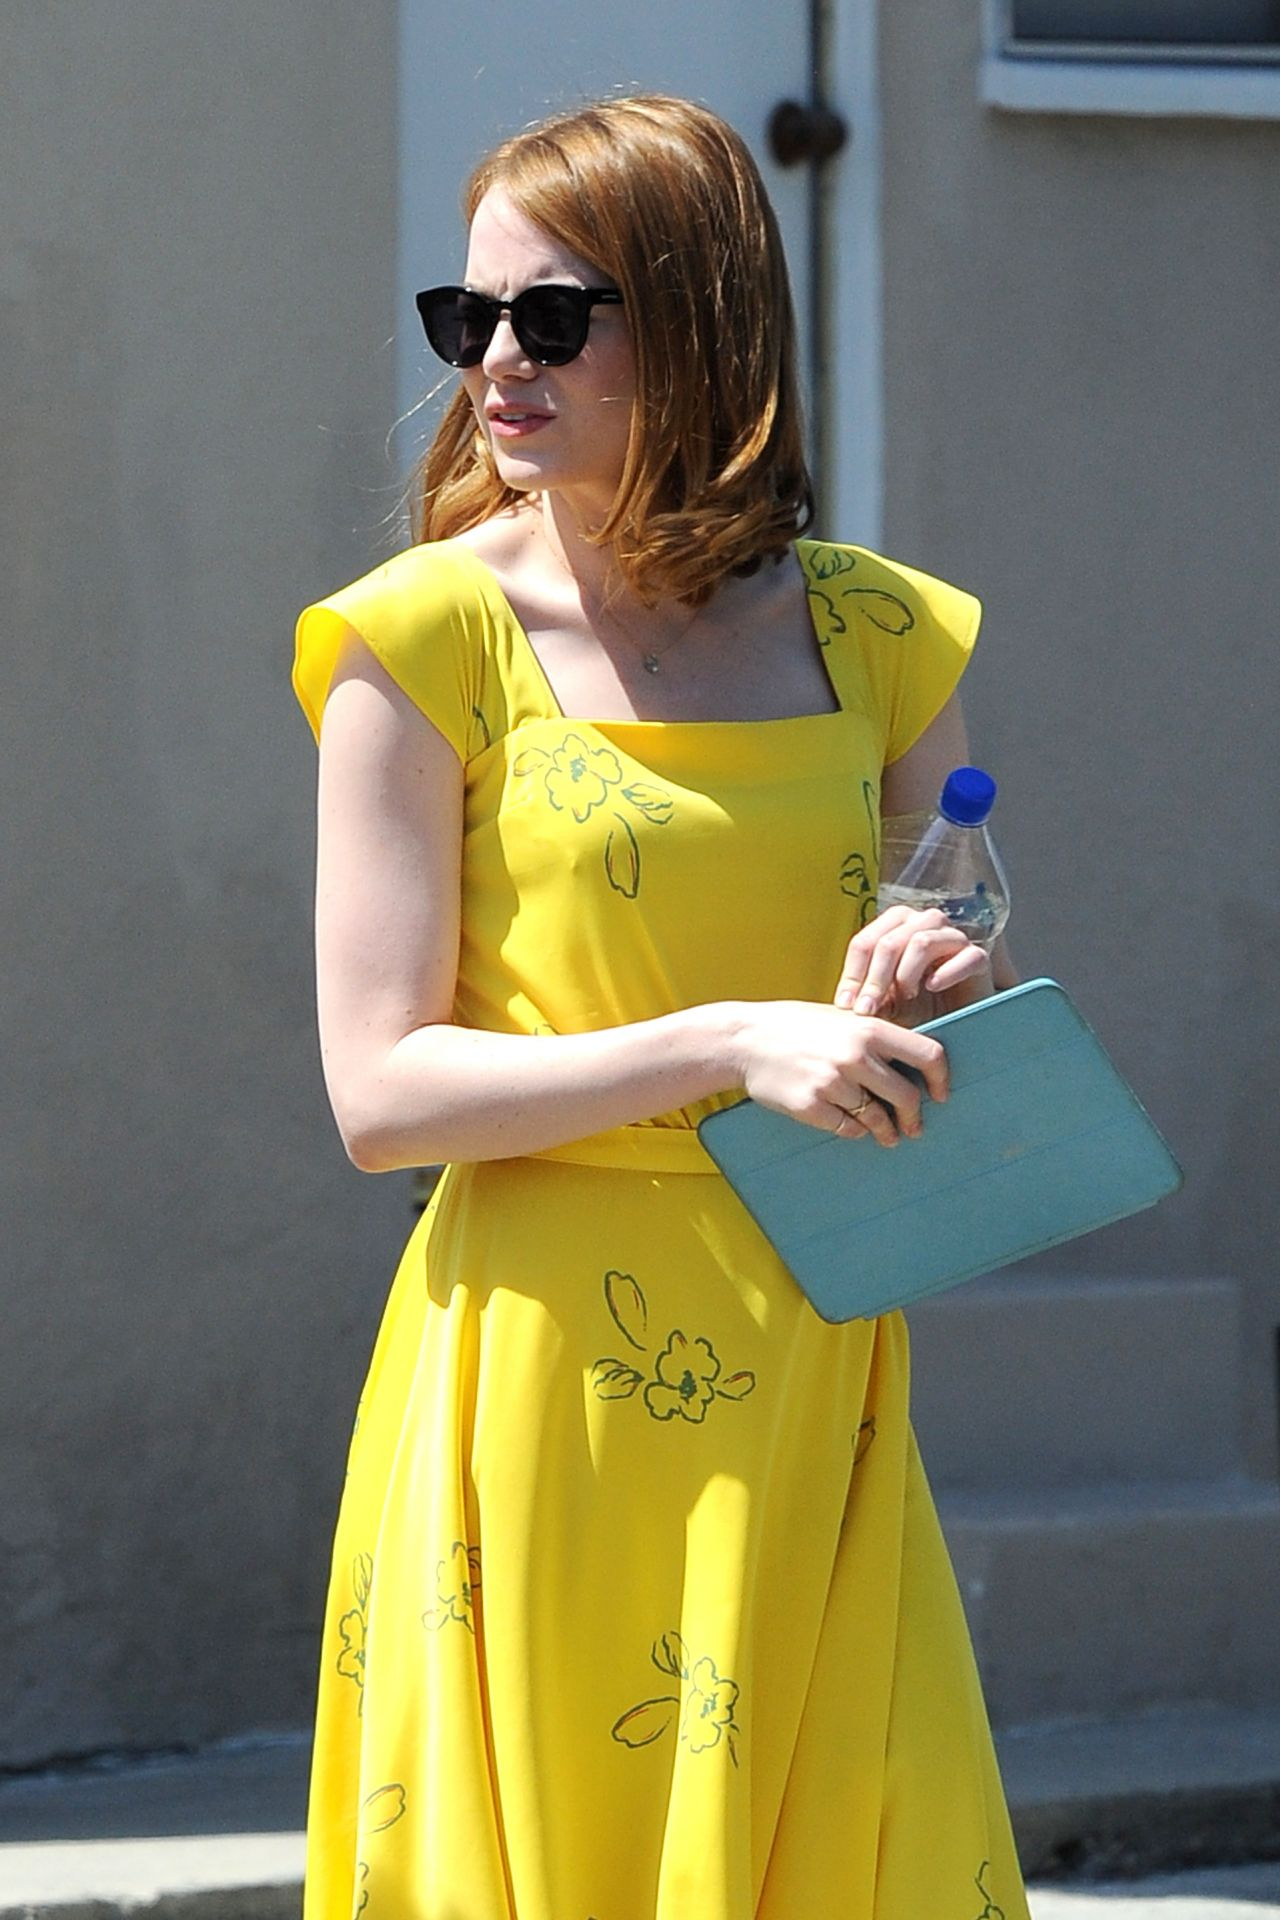 http://celebmafia.com/wp-content/uploads/2015/08/emma-stone-on-the-set-of-la-la-land-in-los-angeles-august-2015_1.jpg